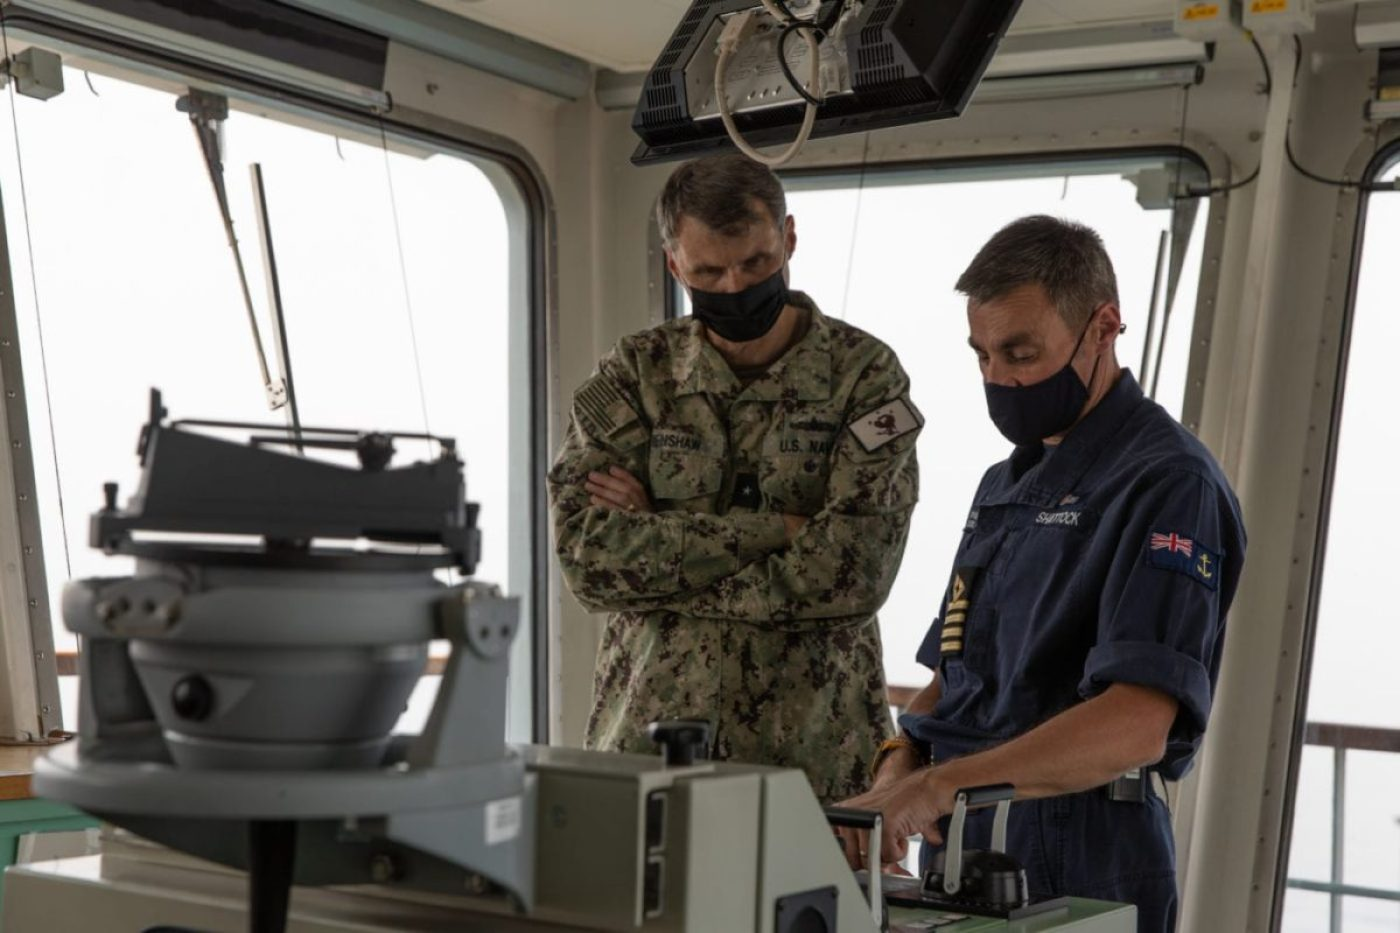 Royal Fleet Auxiliary Capt. Sam Shattock, commanding officer of Royal Fleet Auxiliary landing ship dock RFA Cardigan Bay (L 3009), right, and Rear Adm. Curt Renshaw, deputy commander of U.S. Naval Forces Central Command and U.S. 5th Fleet, discuss radar capabilities during exercise Artemis Trident 21. (U.S. Army photo by Sgt. Wheeler Brunschmid)